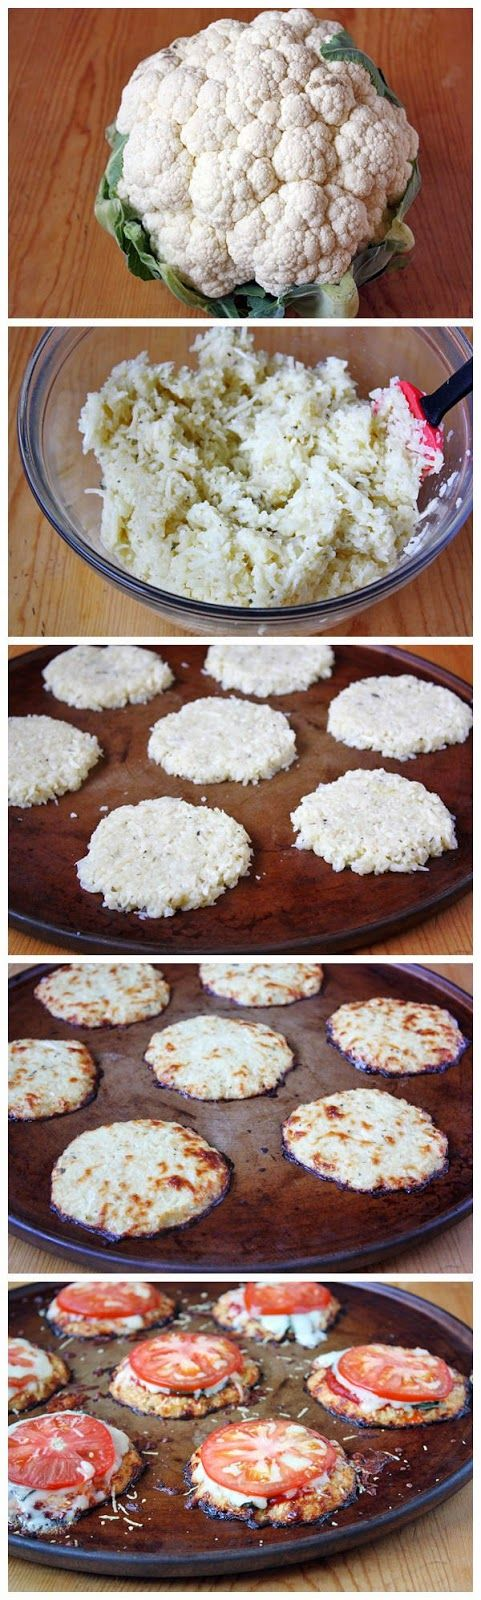 Mini Cauliflower Pizza crusts. We'll most likely be making this with my grandma. :)